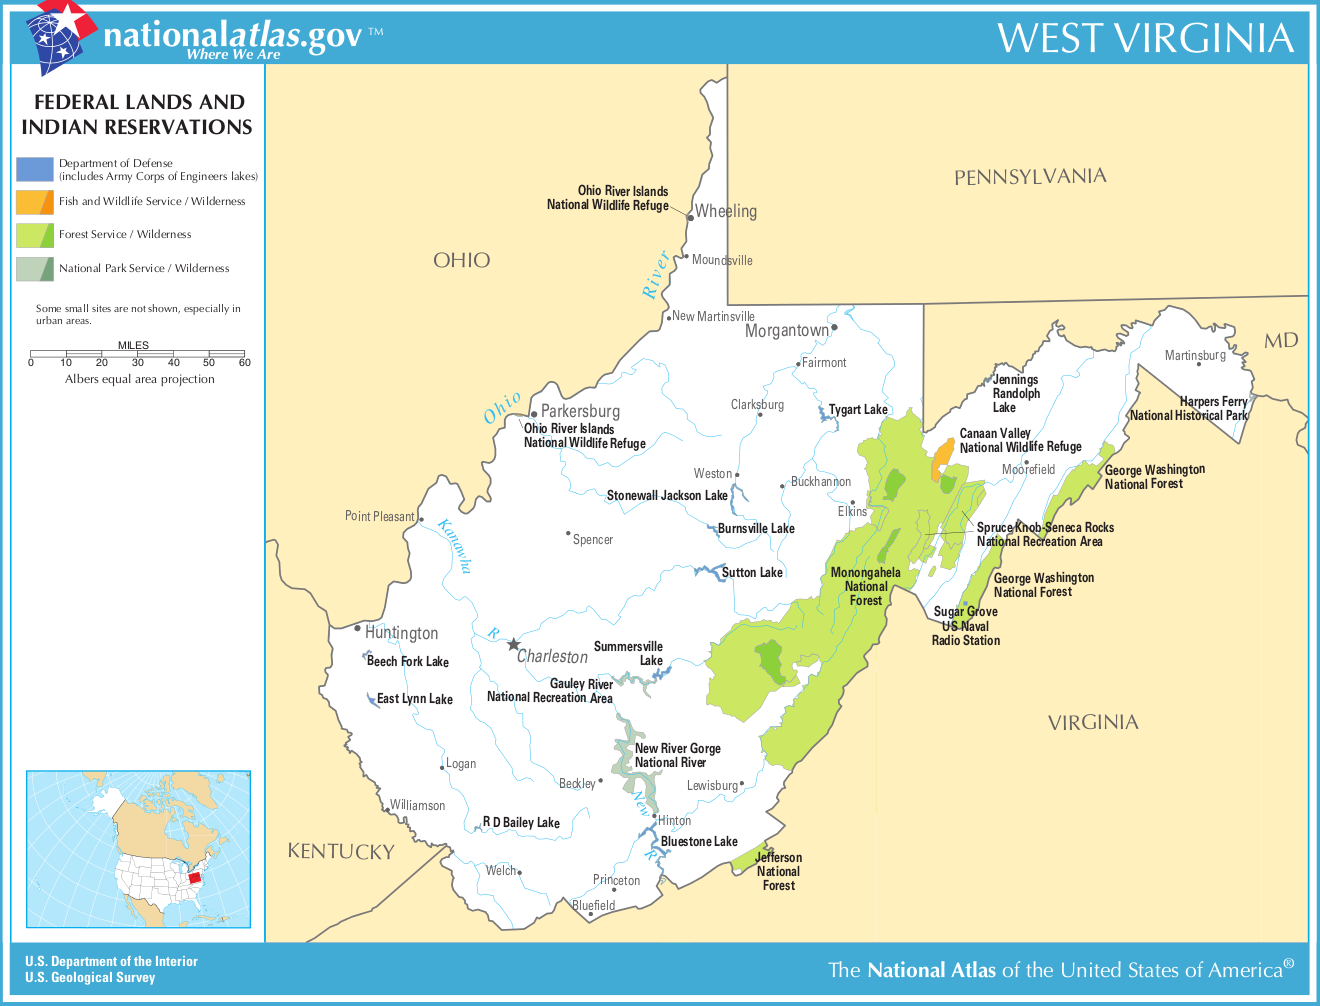 West-Virginia-federal-lands-indian-reservations-map | Weltatlas